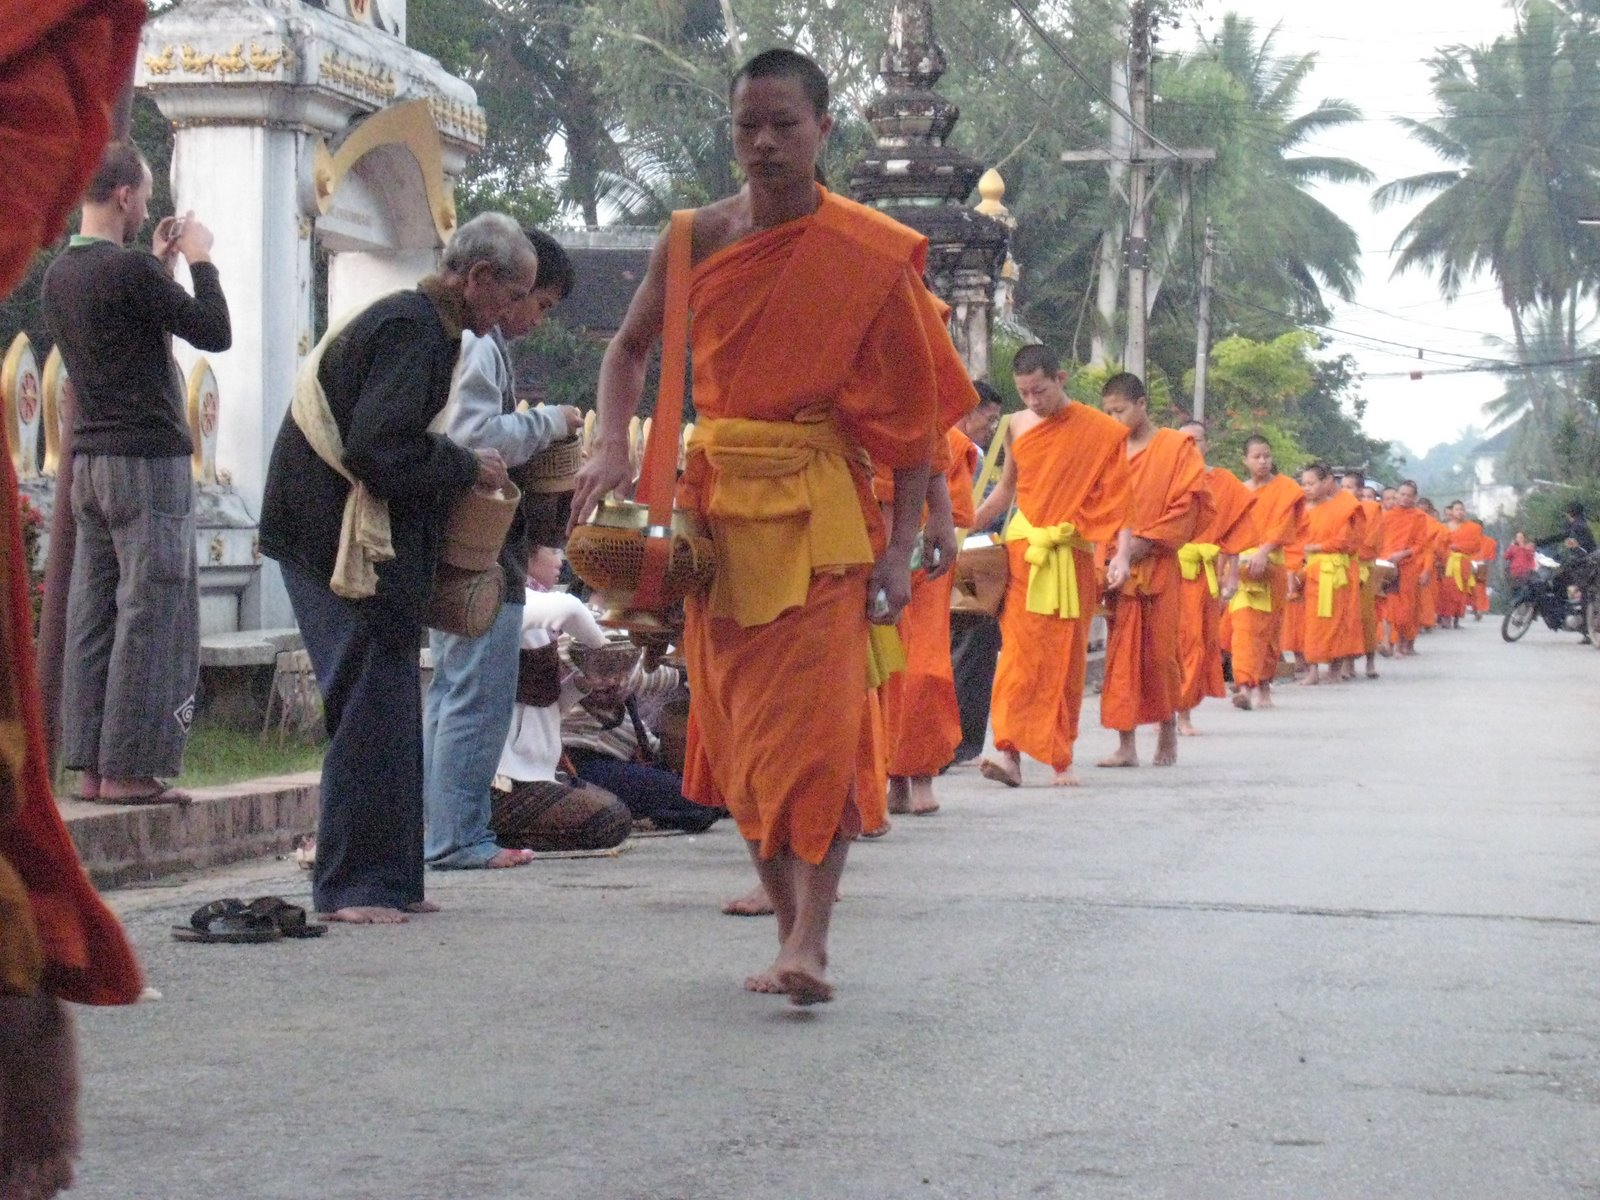 Four of our group woke up at 5:30 this morning and headed into town to participate in morning alms. All of the monks from all the temples in the area […]